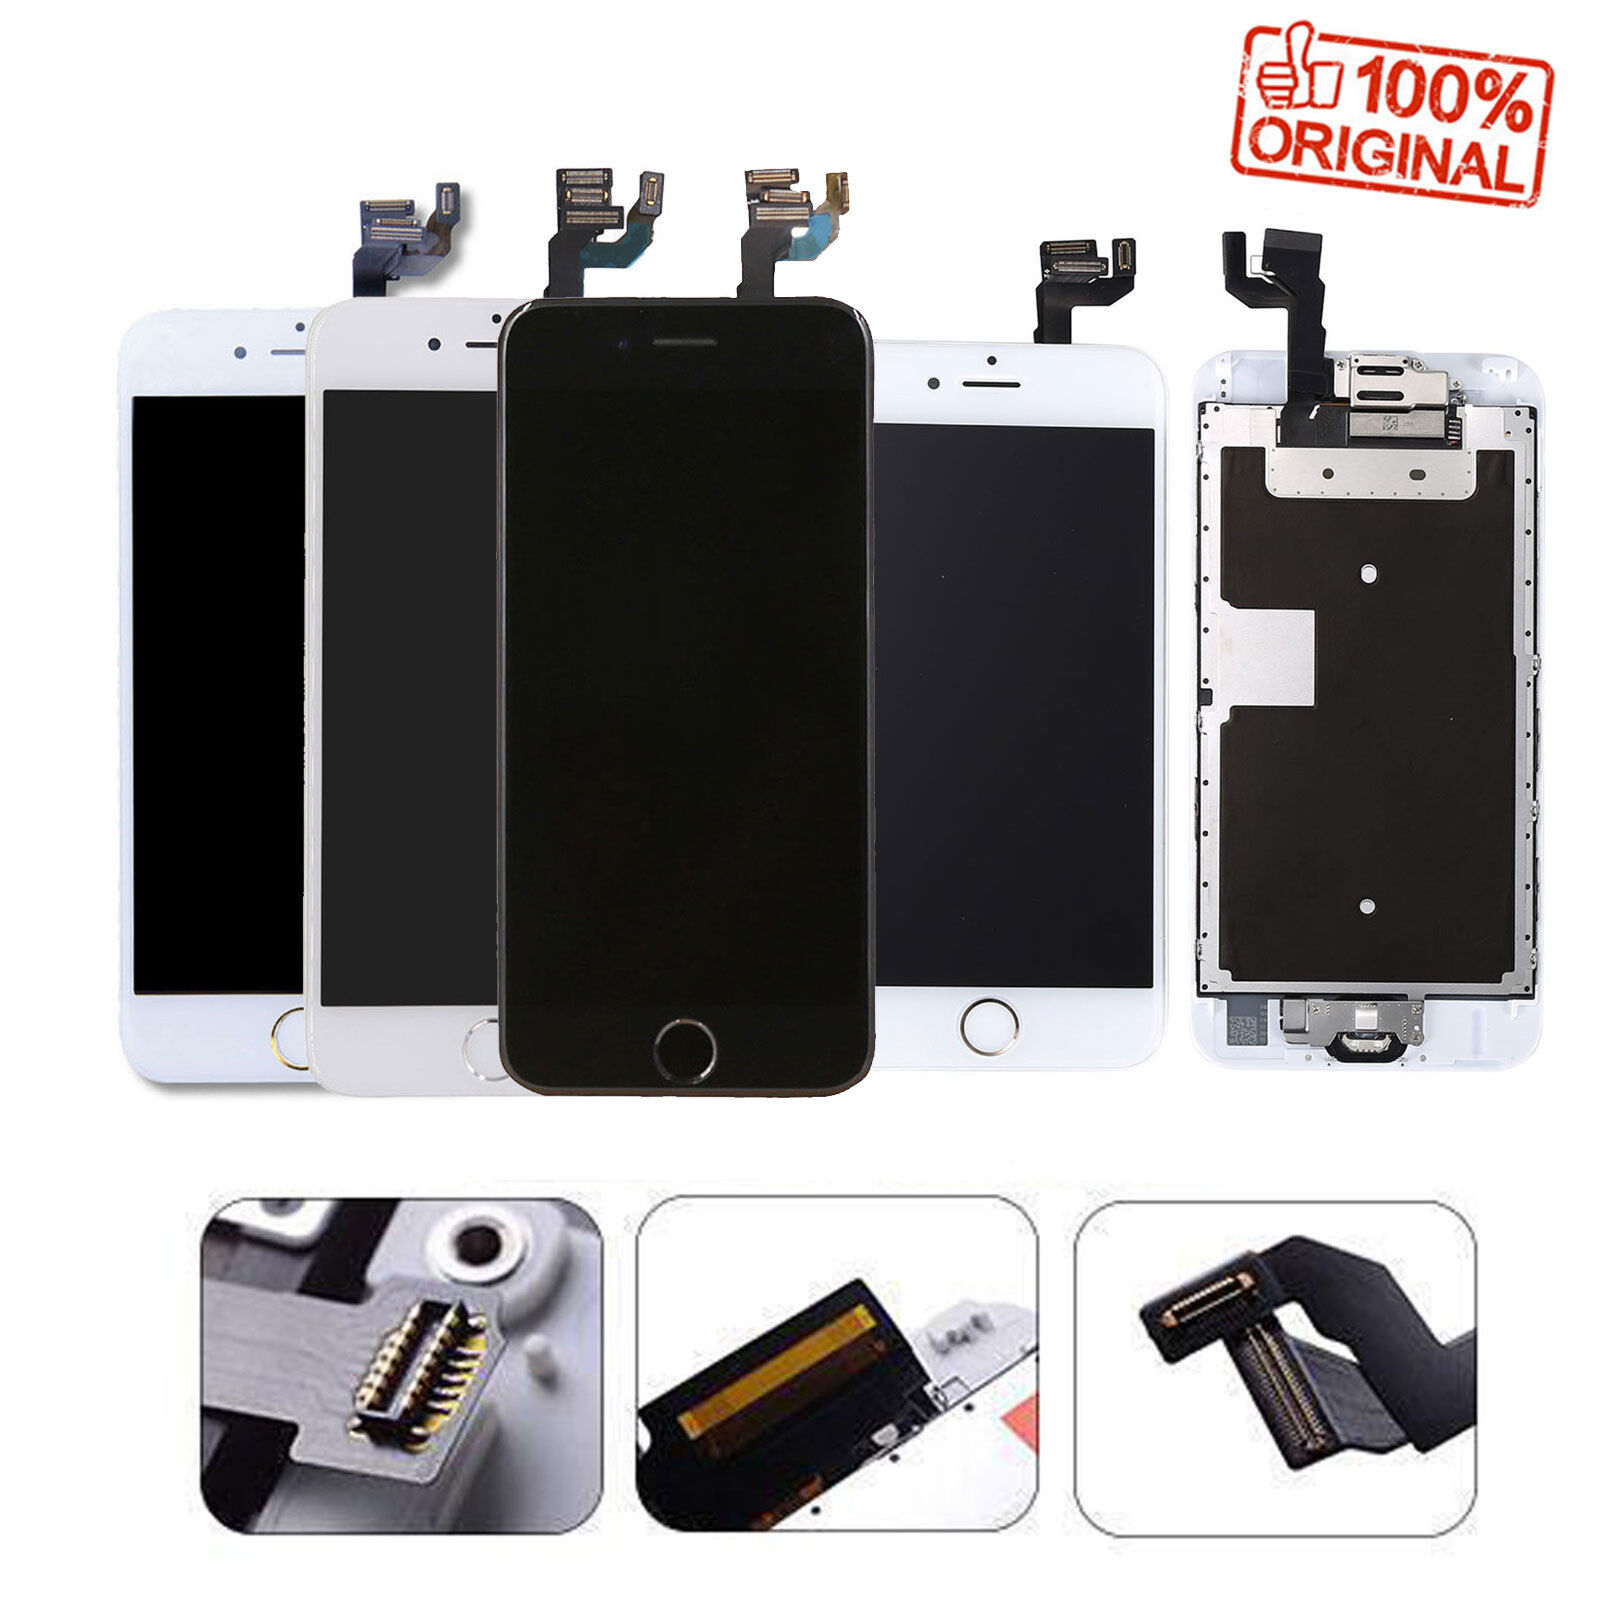 For iPhone 7 6 6s Plus 6 LCD Display Complete Screen Replacement Home Button